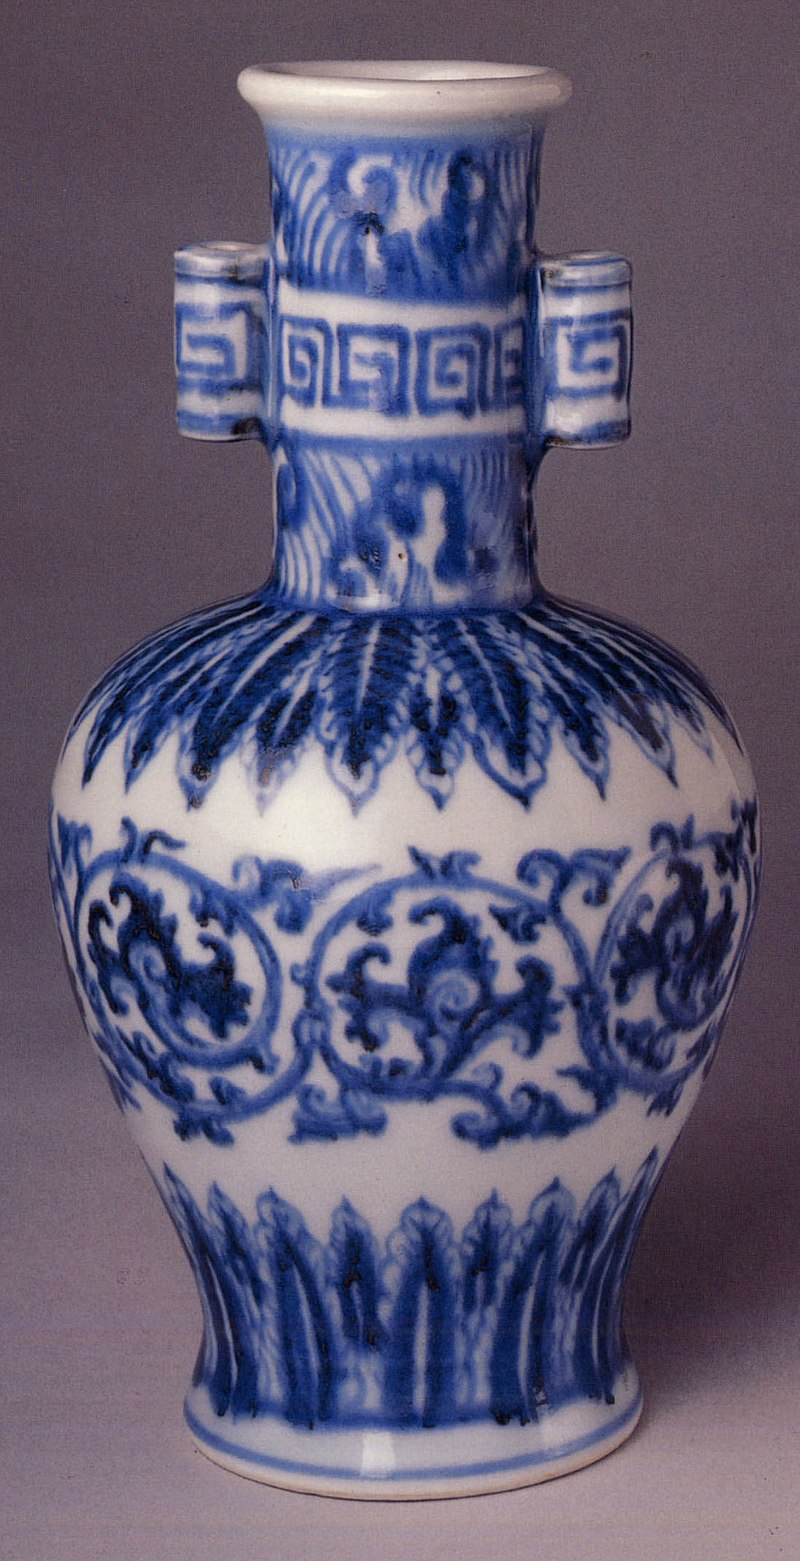 Ming dynasty Xuande mark and period (1426%E2%80%9335) imperial blue and white vase, from The Metropolitan Museum of Art. %E6%98%8E%E5%AE%A3%E5%BE%B7 %E6%99%AF%E5%BE%B7%E9%8E%AE%E7%AA%AF%E9%9D%92%E8%8A%B1%E8%B2%AB%E8%80%B3%E7%93%B6, %E7%BA%BD%E7%BA%A6%E5%A4%A7%E9%83%BD%E5%8D%9A%E7%89%A9%E9%A6%86 .jpg